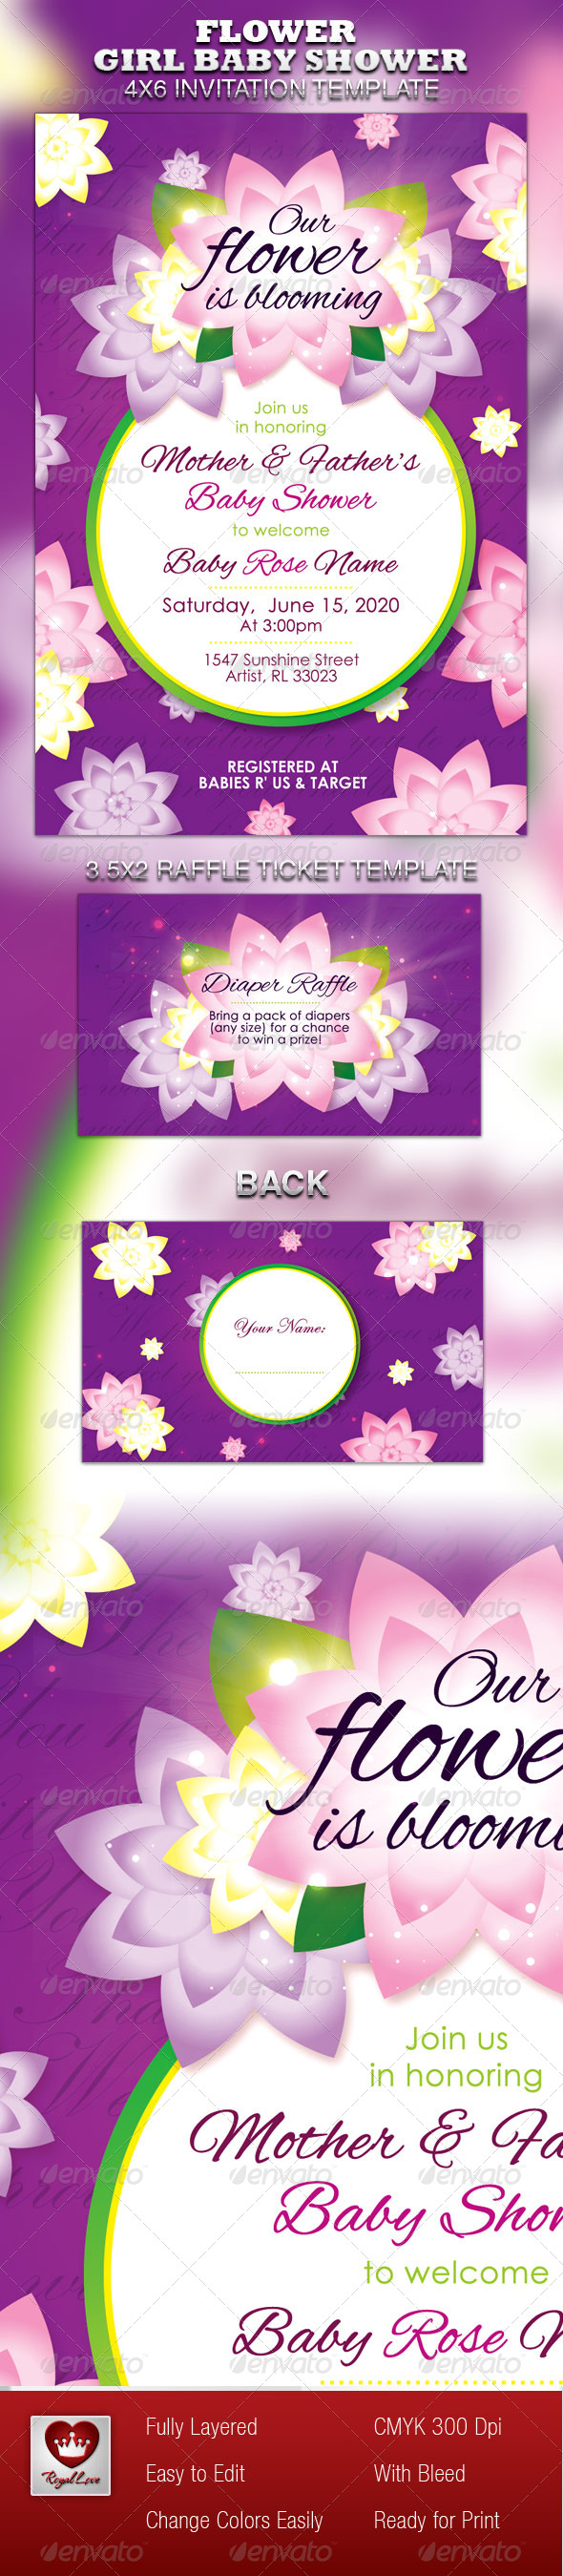 Flower Girl Baby Shower Invitation & Raffle Ticket - Invitations Cards & Invites